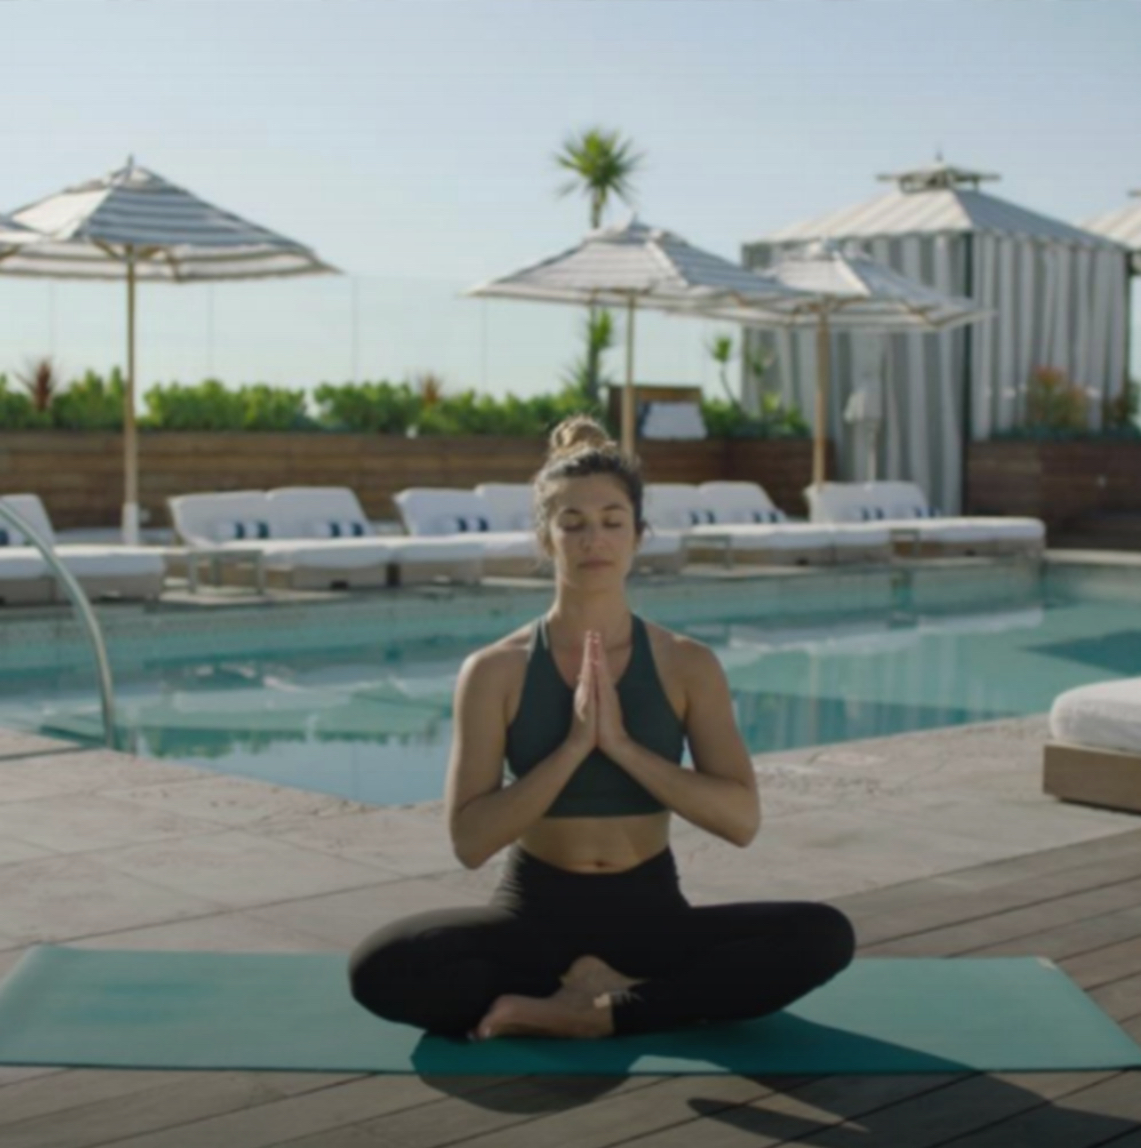 A woman in a yoga outfit meditates with hands in prayer pose poolside at in Beverly Hills, CA.